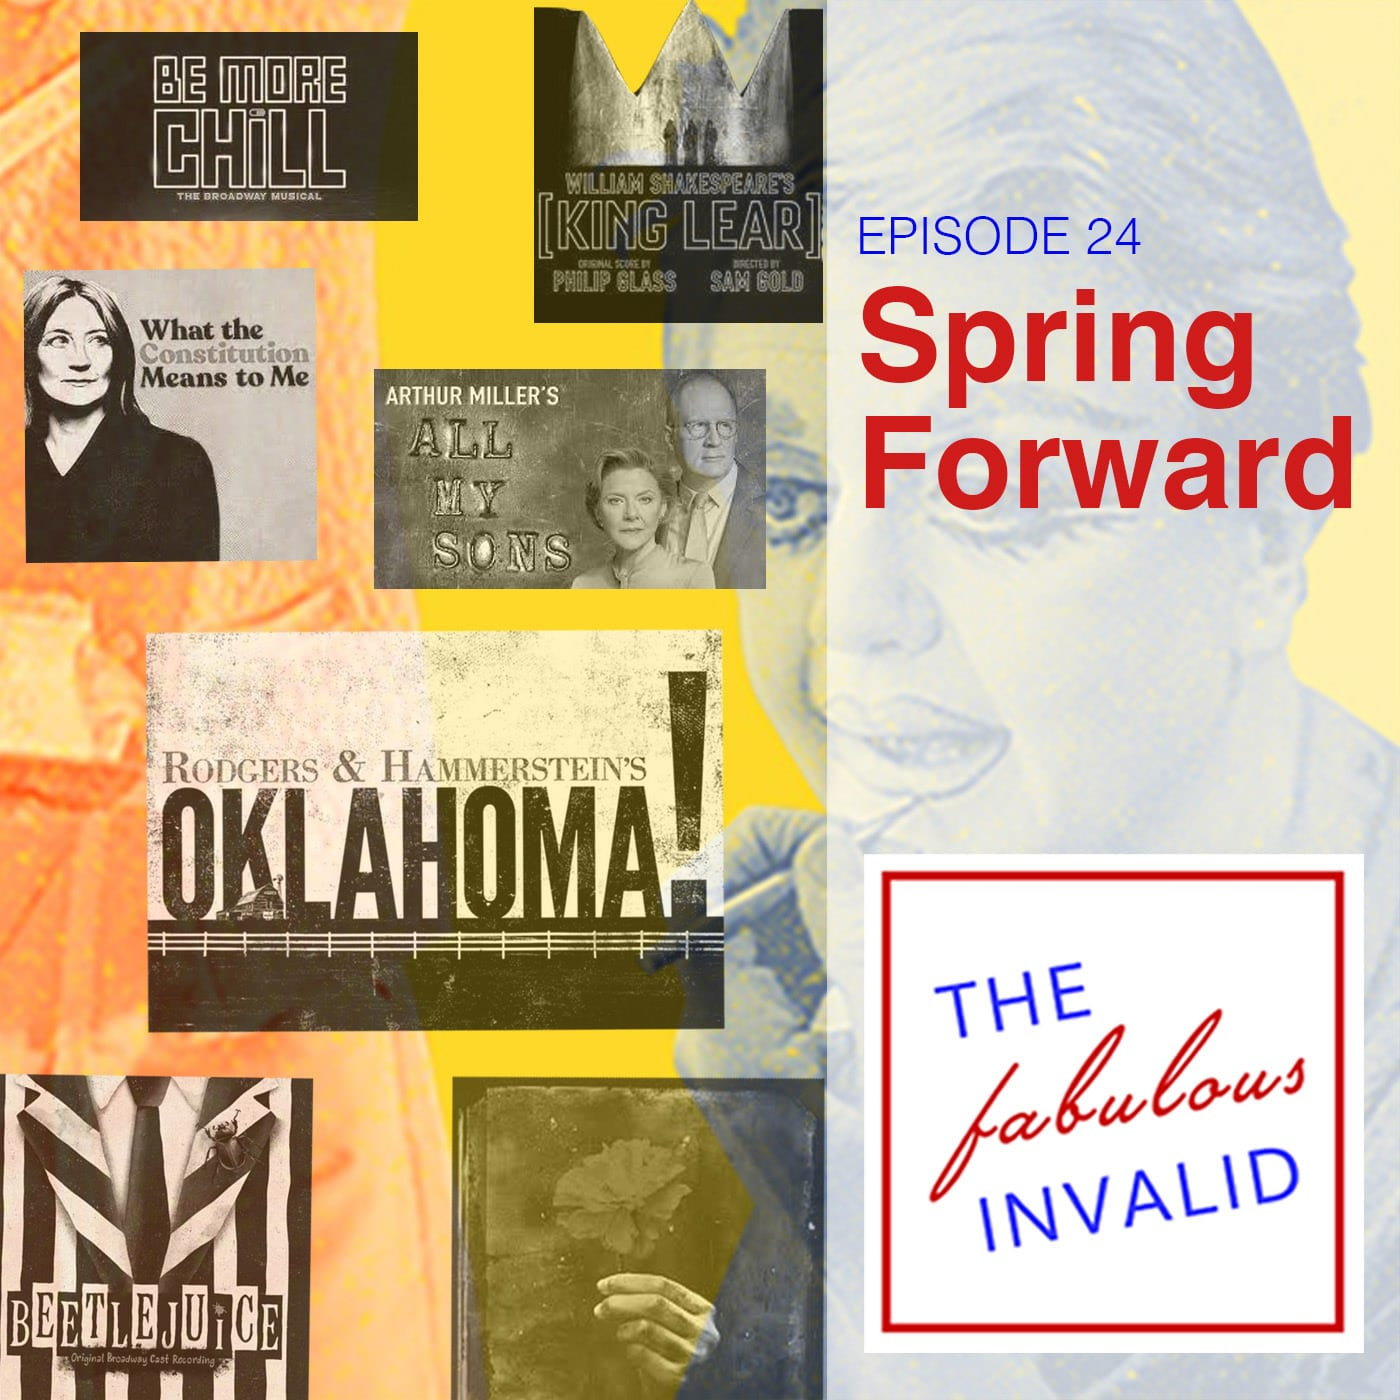 The Fabulous Invalid Ep 25 Spring Forward